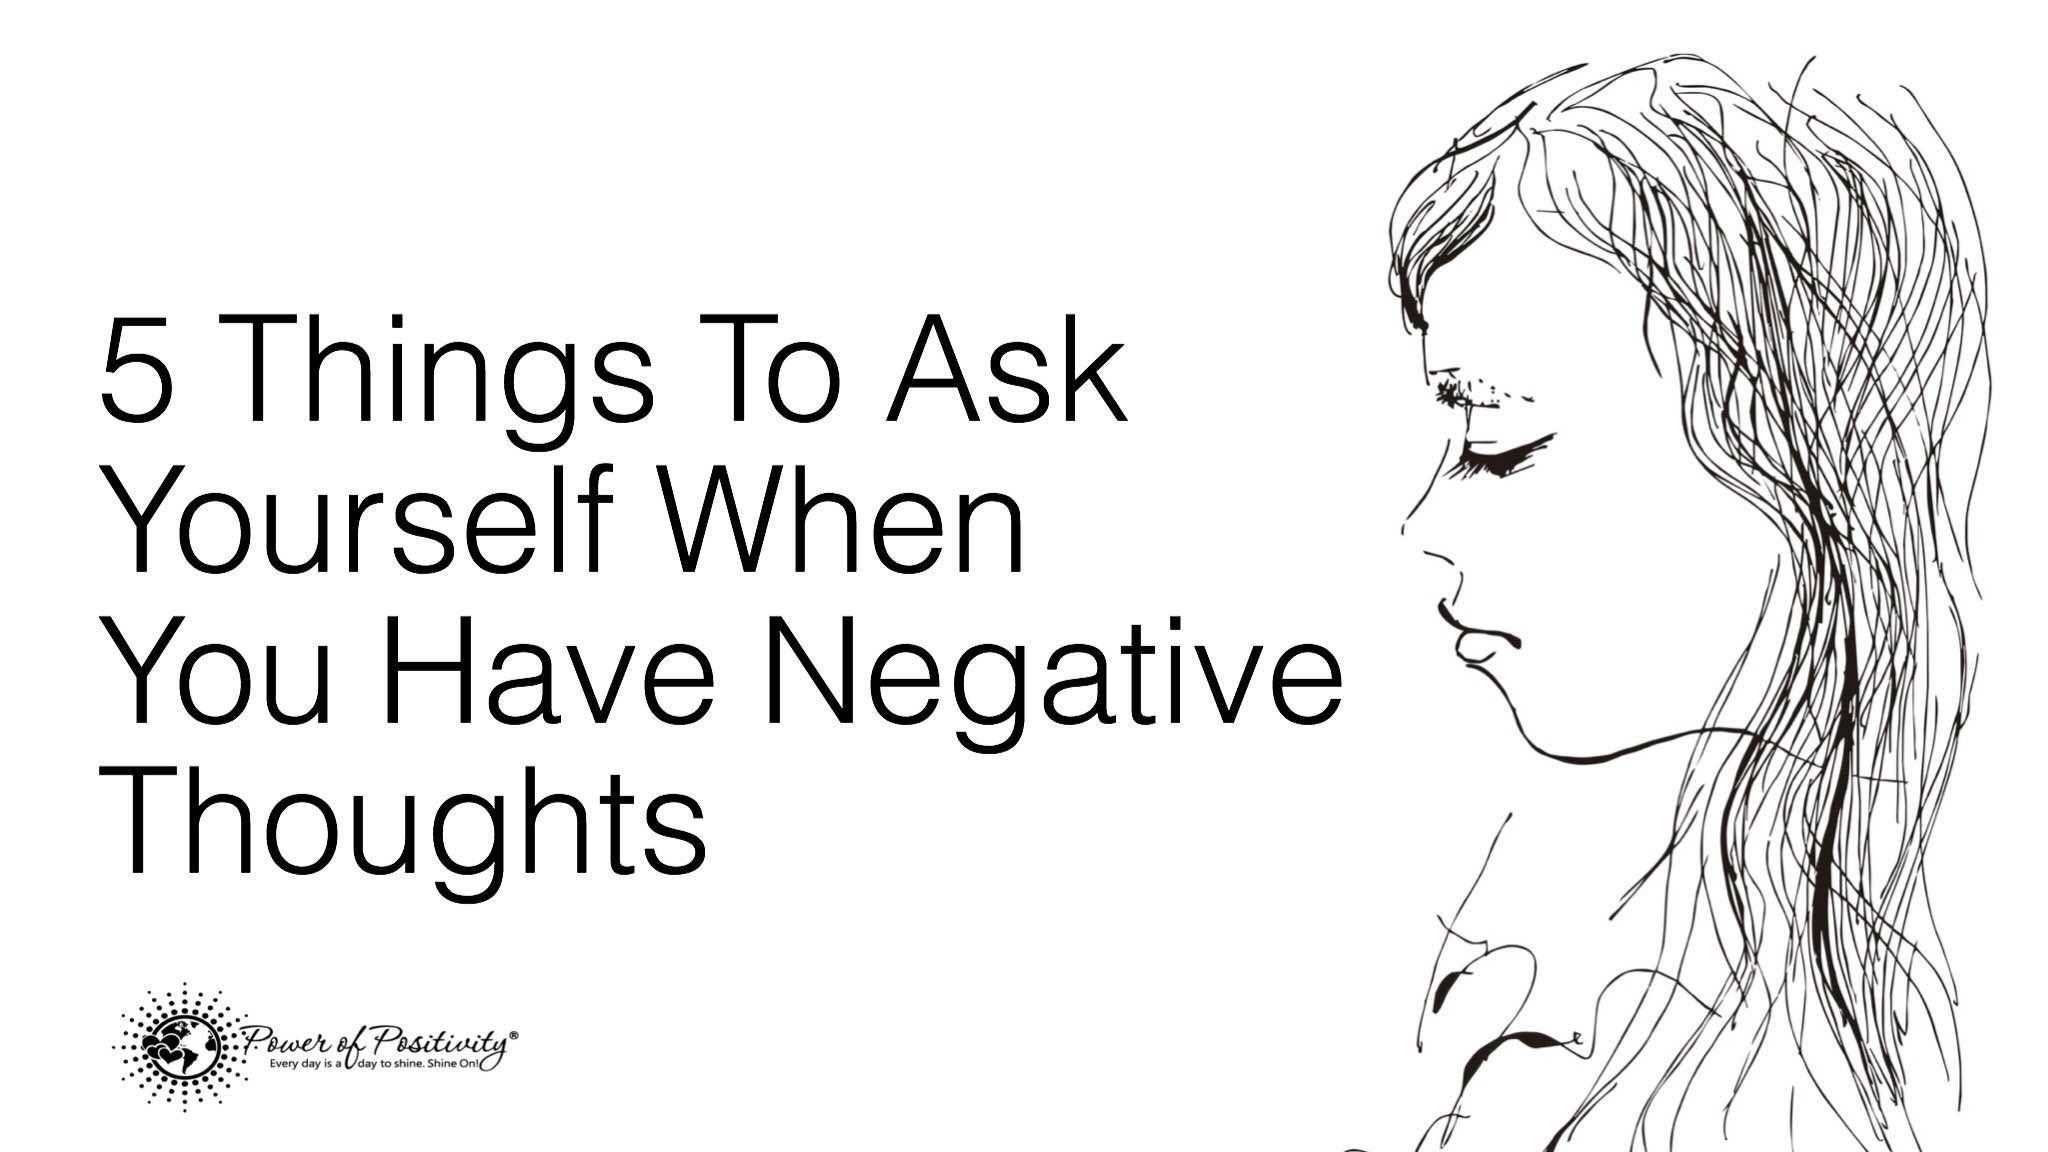 5 Things To Ask Yourself When You Have Negative Thoughts